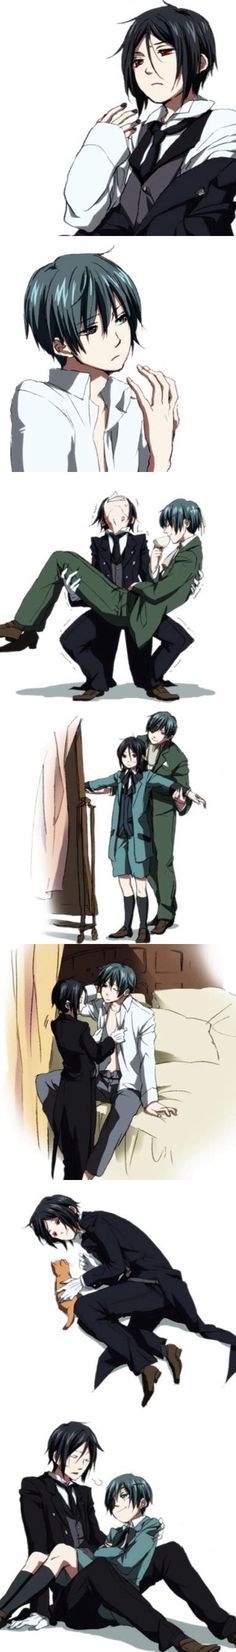 If Ciel was older than Sebastian ......though I'll be fighting with Sebastian like cats and dogs -_-